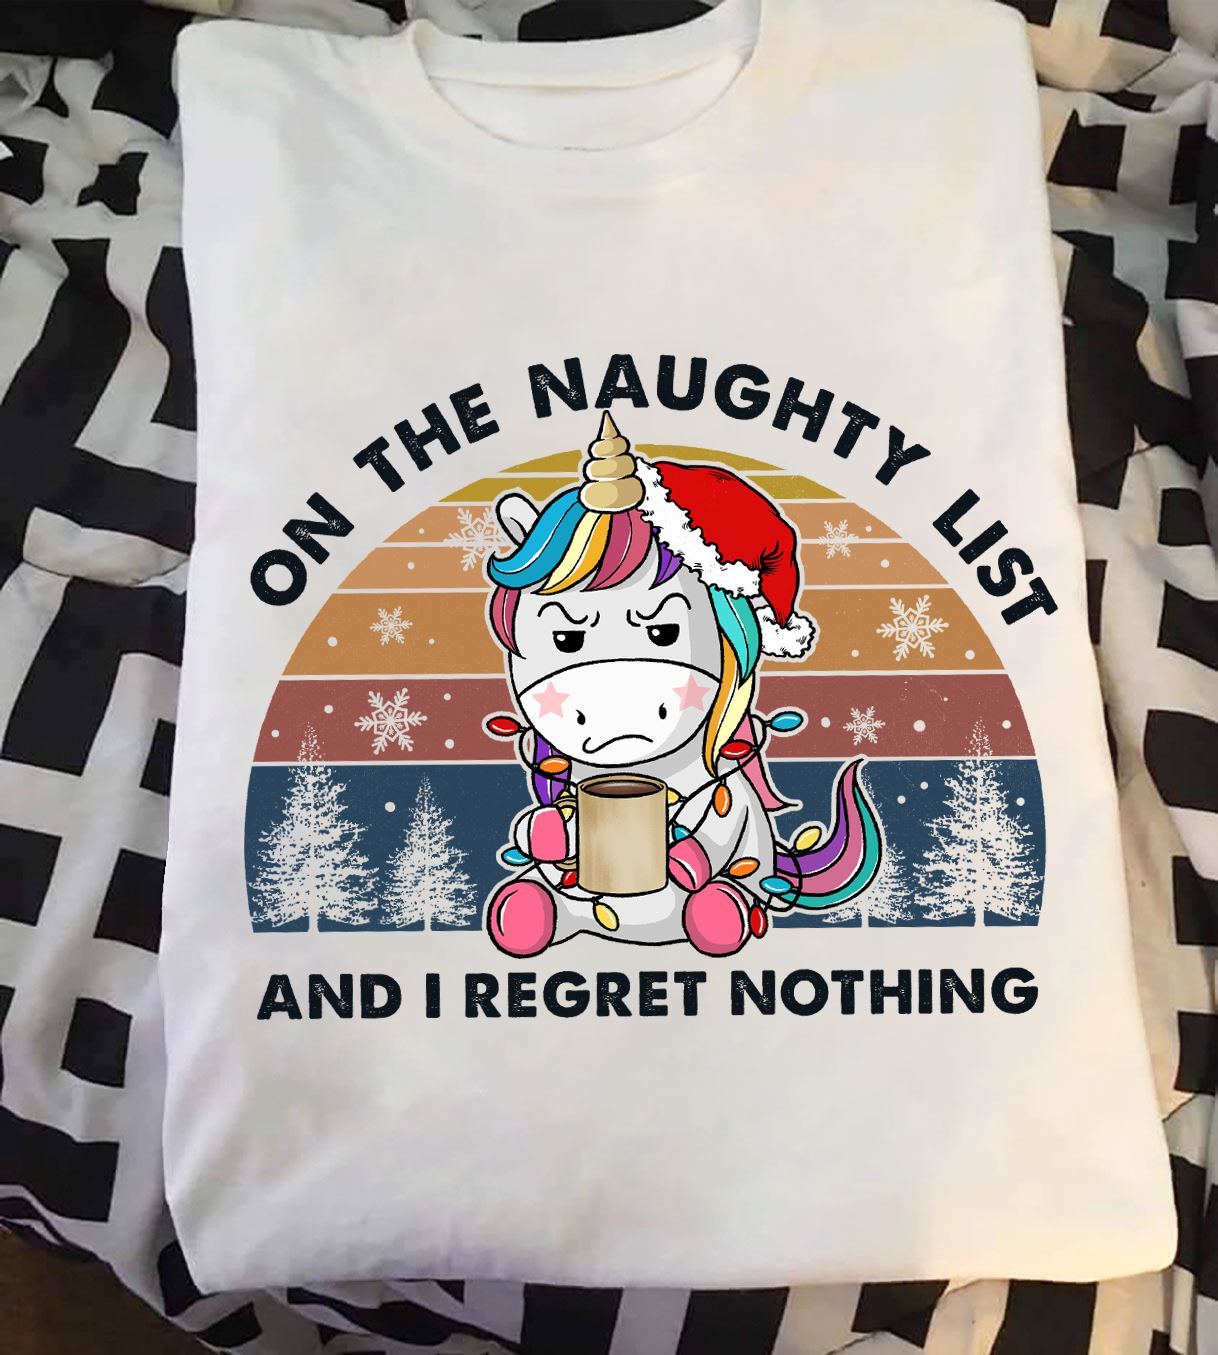 Vintage Unicorn Shirt In The Naughty List I Regret Nothing